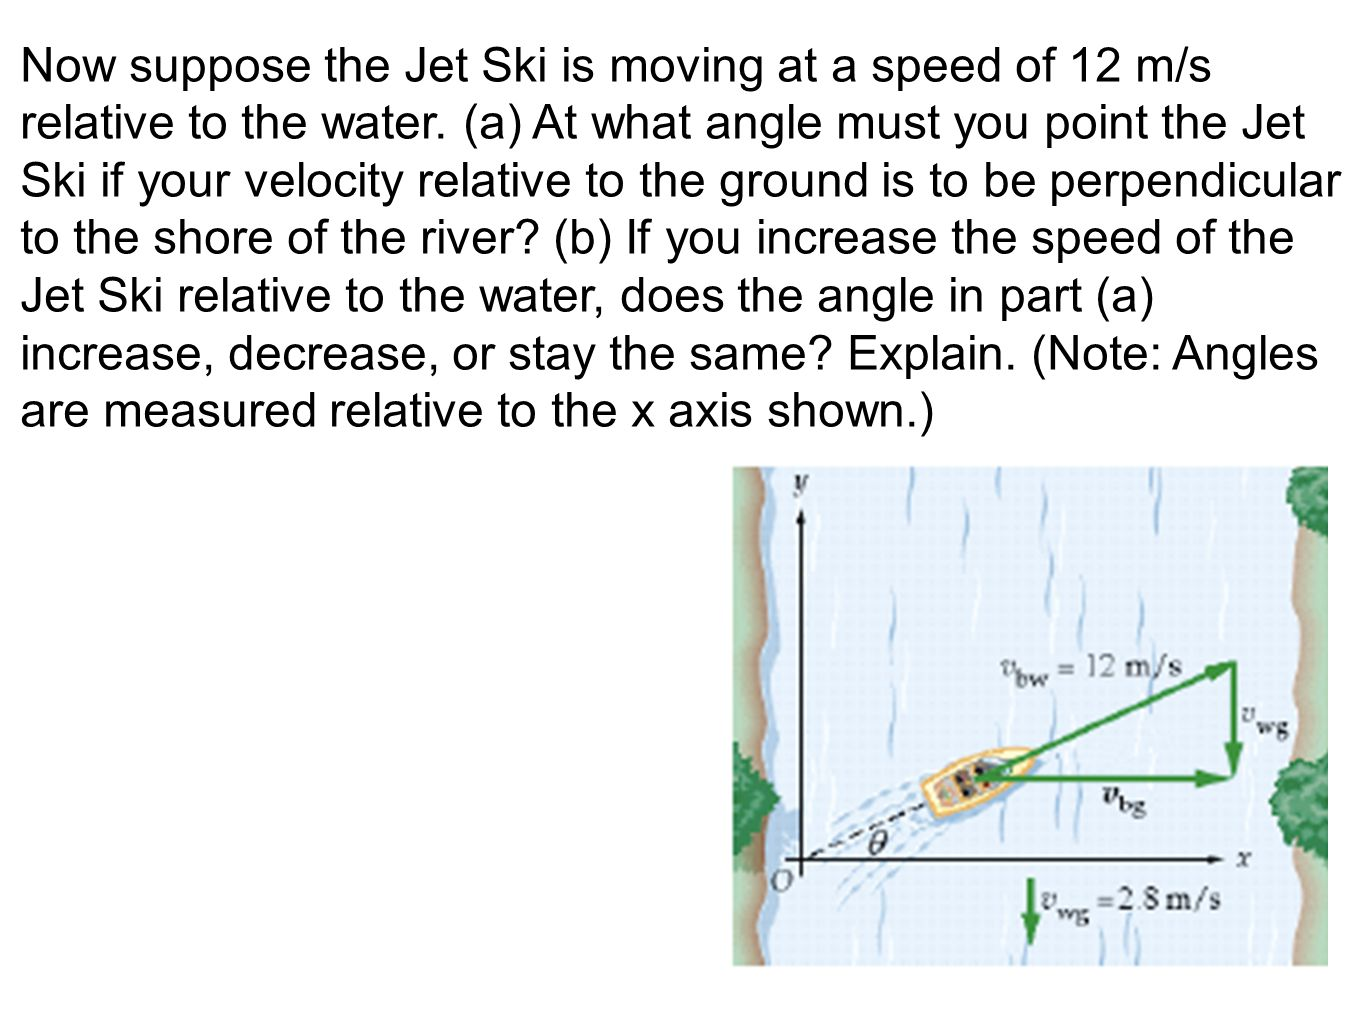 Now suppose the Jet Ski is moving at a speed of 12 m/s relative to the water.